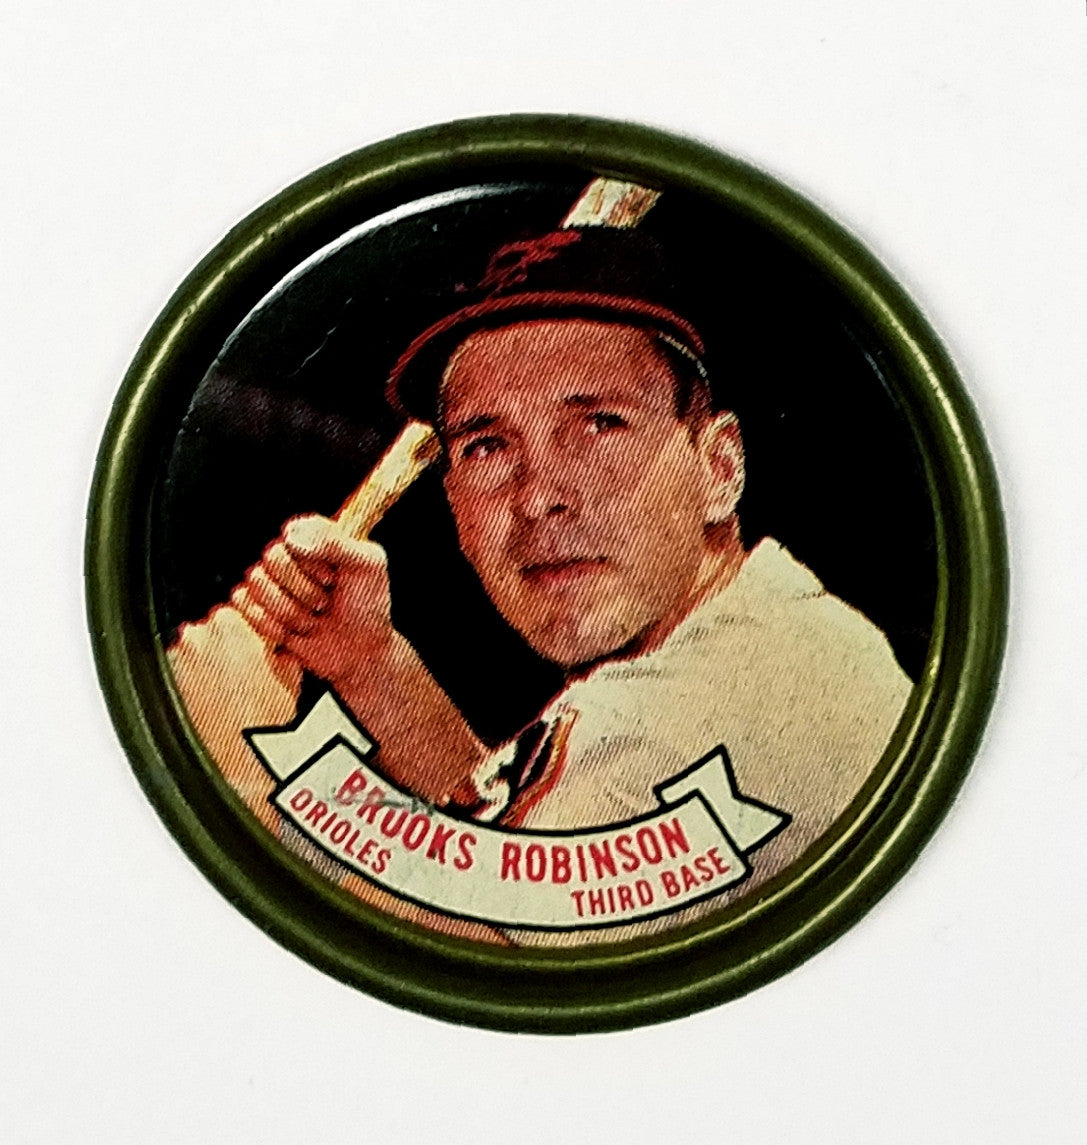 Brooks Robinson, Baltimore, Orioles, 1964, Topps, Baseball, Coin, Rare, HOF, 3rd Base, Gold Glove, Fielding